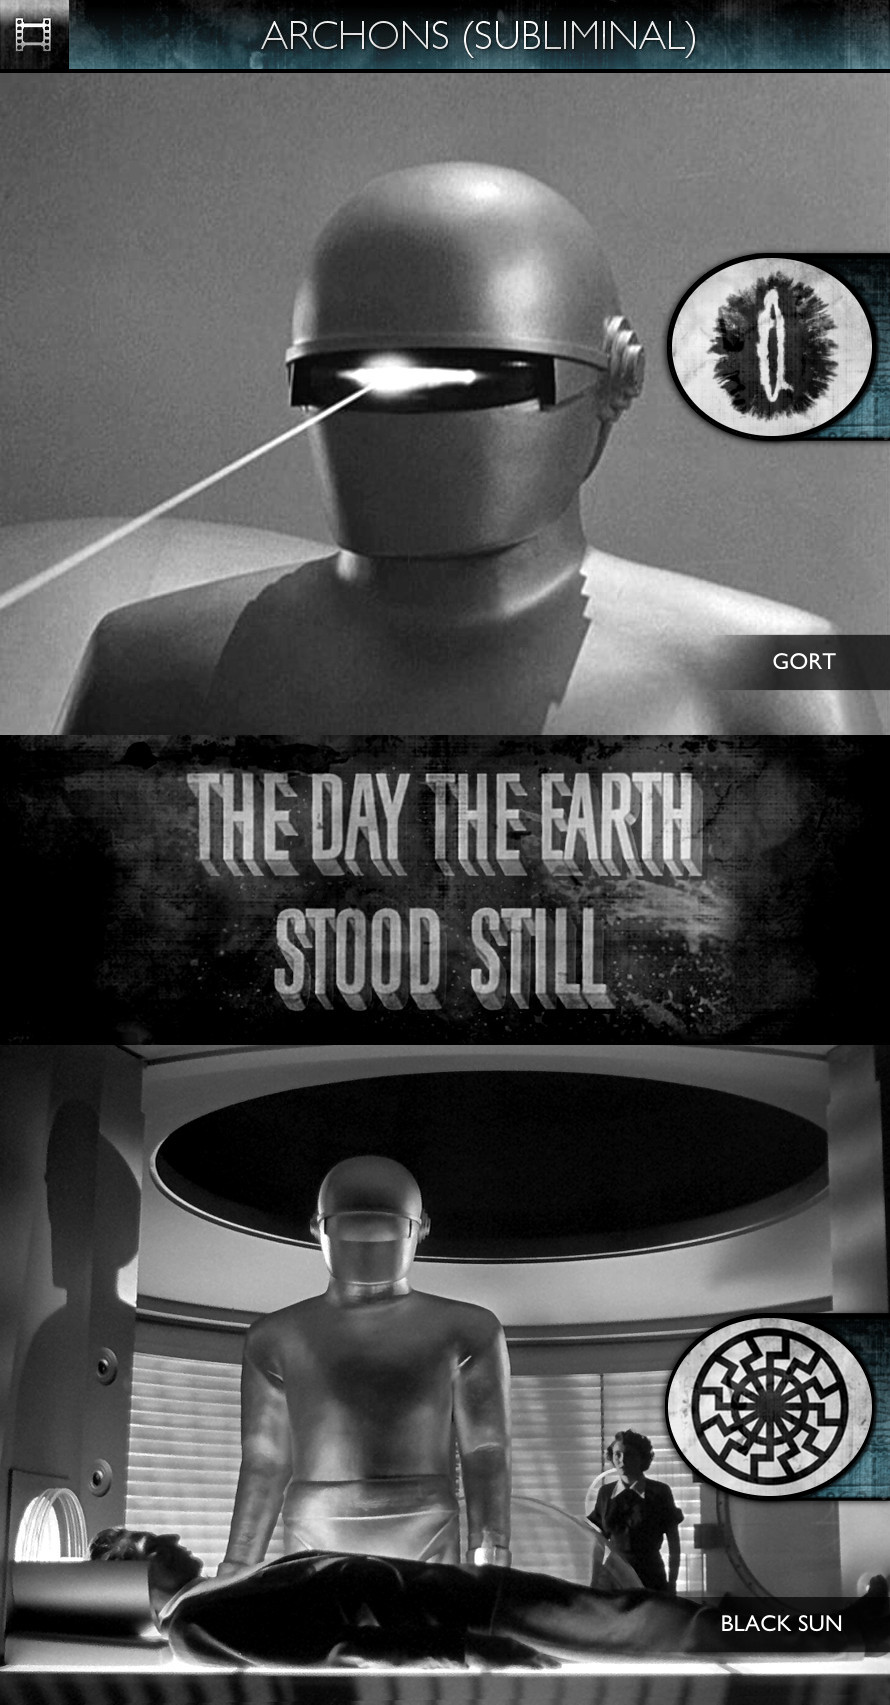 Archons - The Day the Earth Stood Still (1951) - Gort